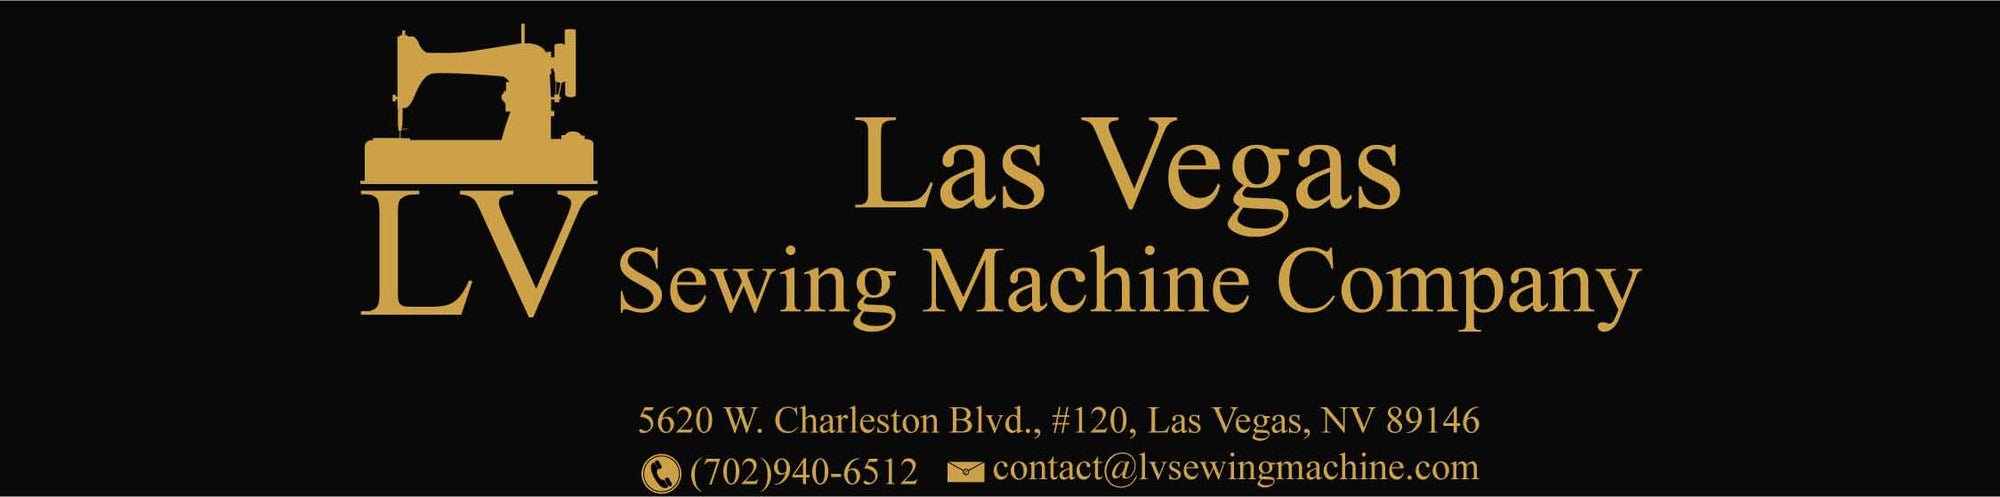 Las Vegas Sewing Machine Co., Inc